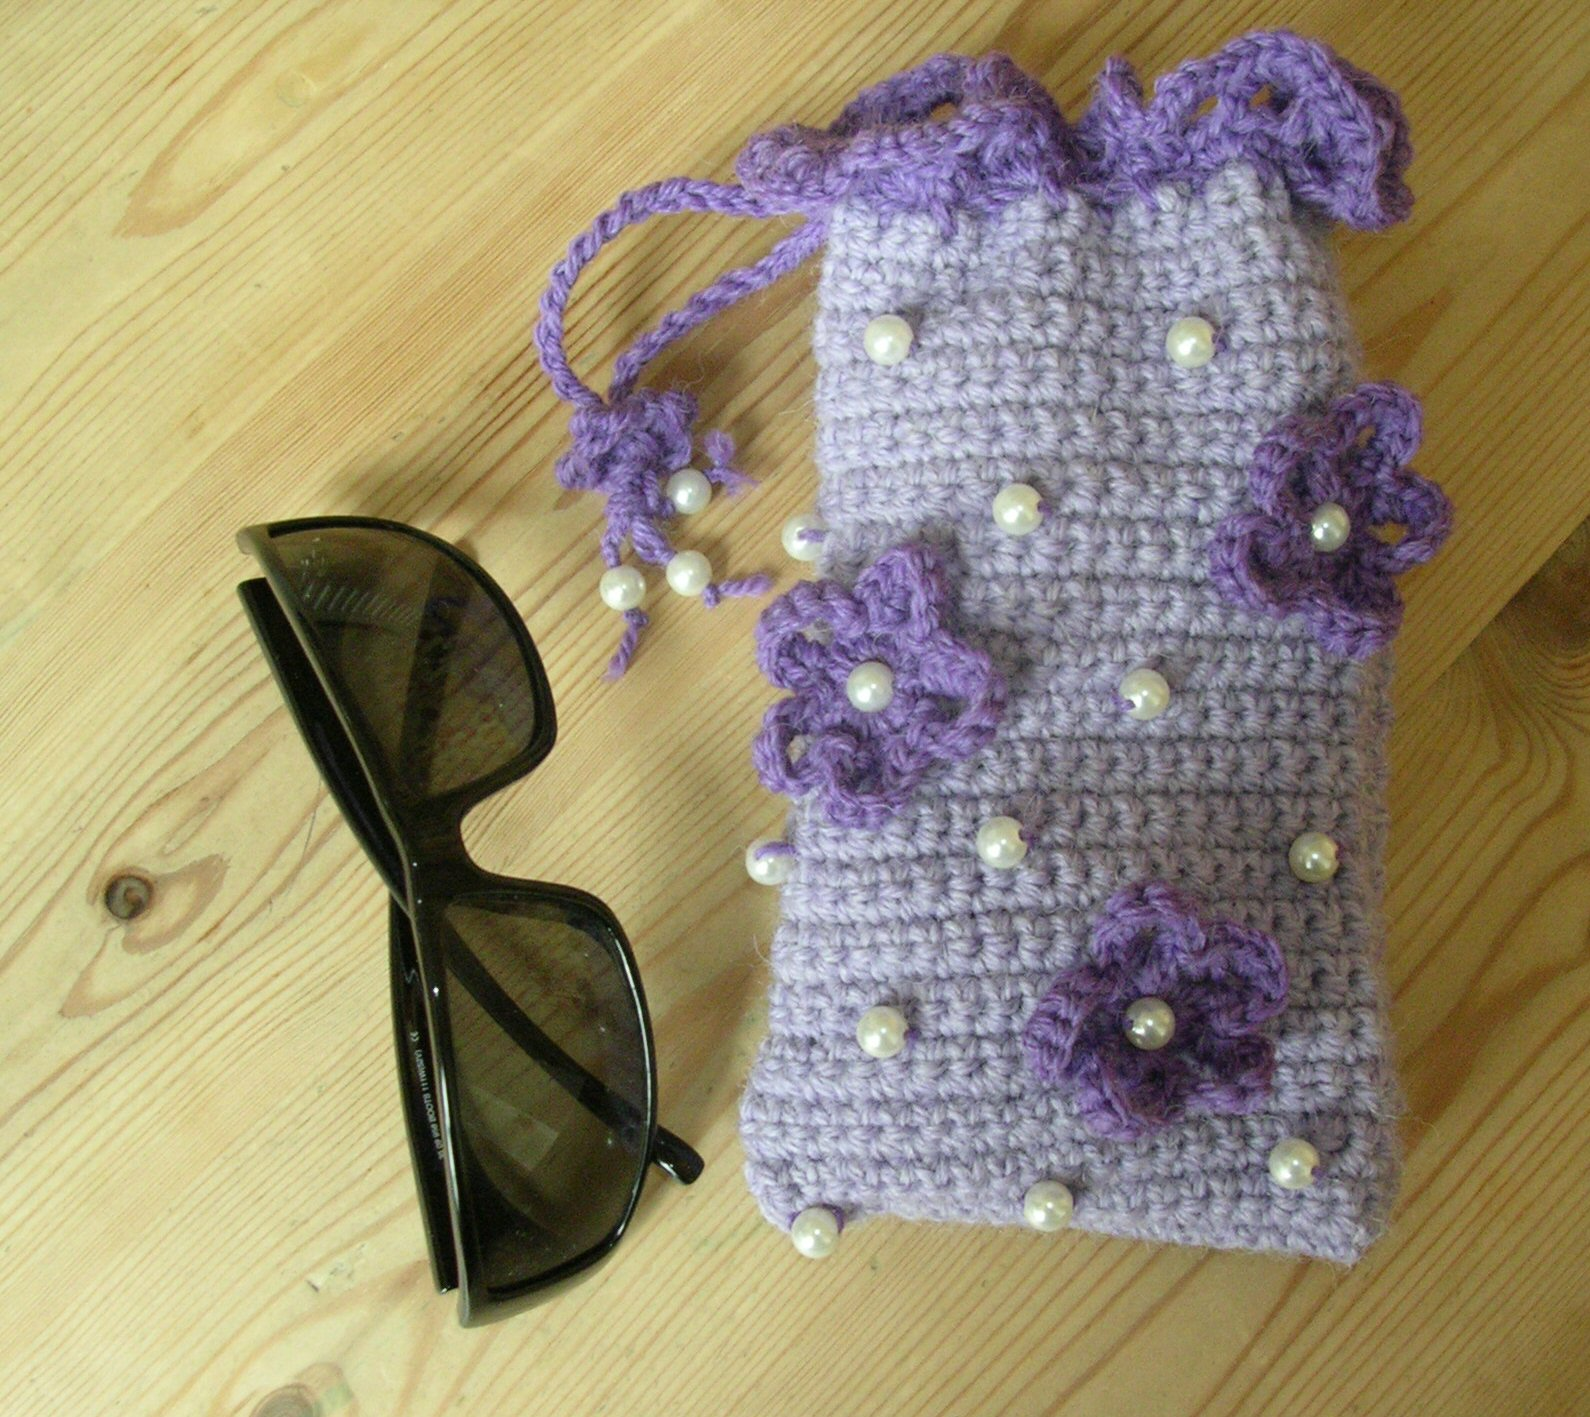 Free Crochet Pattern Eyeglass Case : Cosmic Crafts: Crafty Crochet: Glasses Case